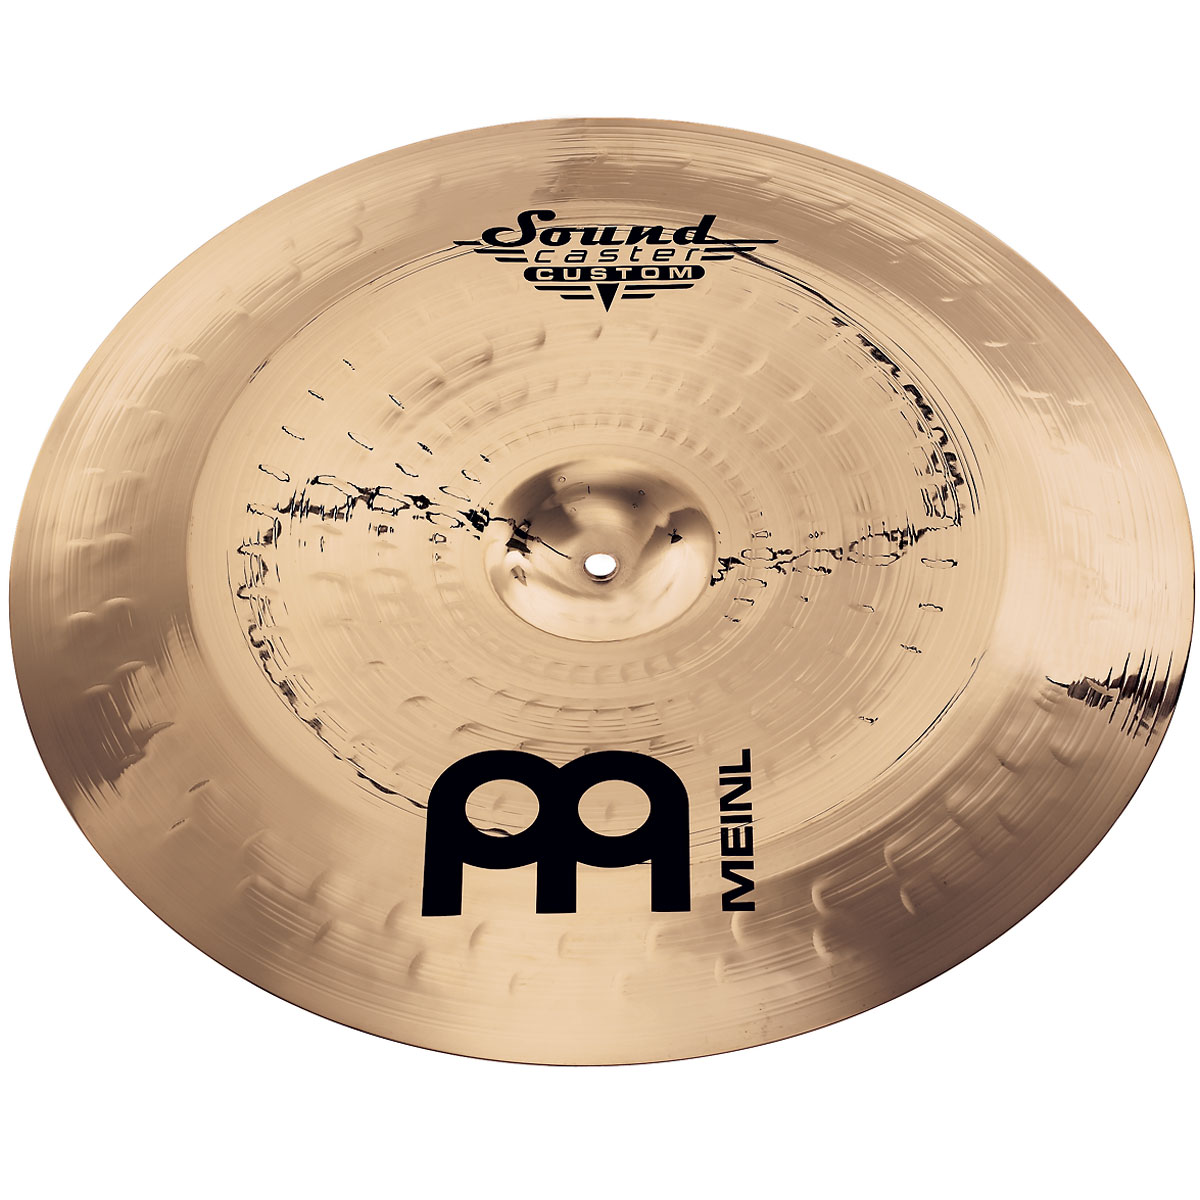 "Meinl 18"" Soundcaster Custom China Cymbal"